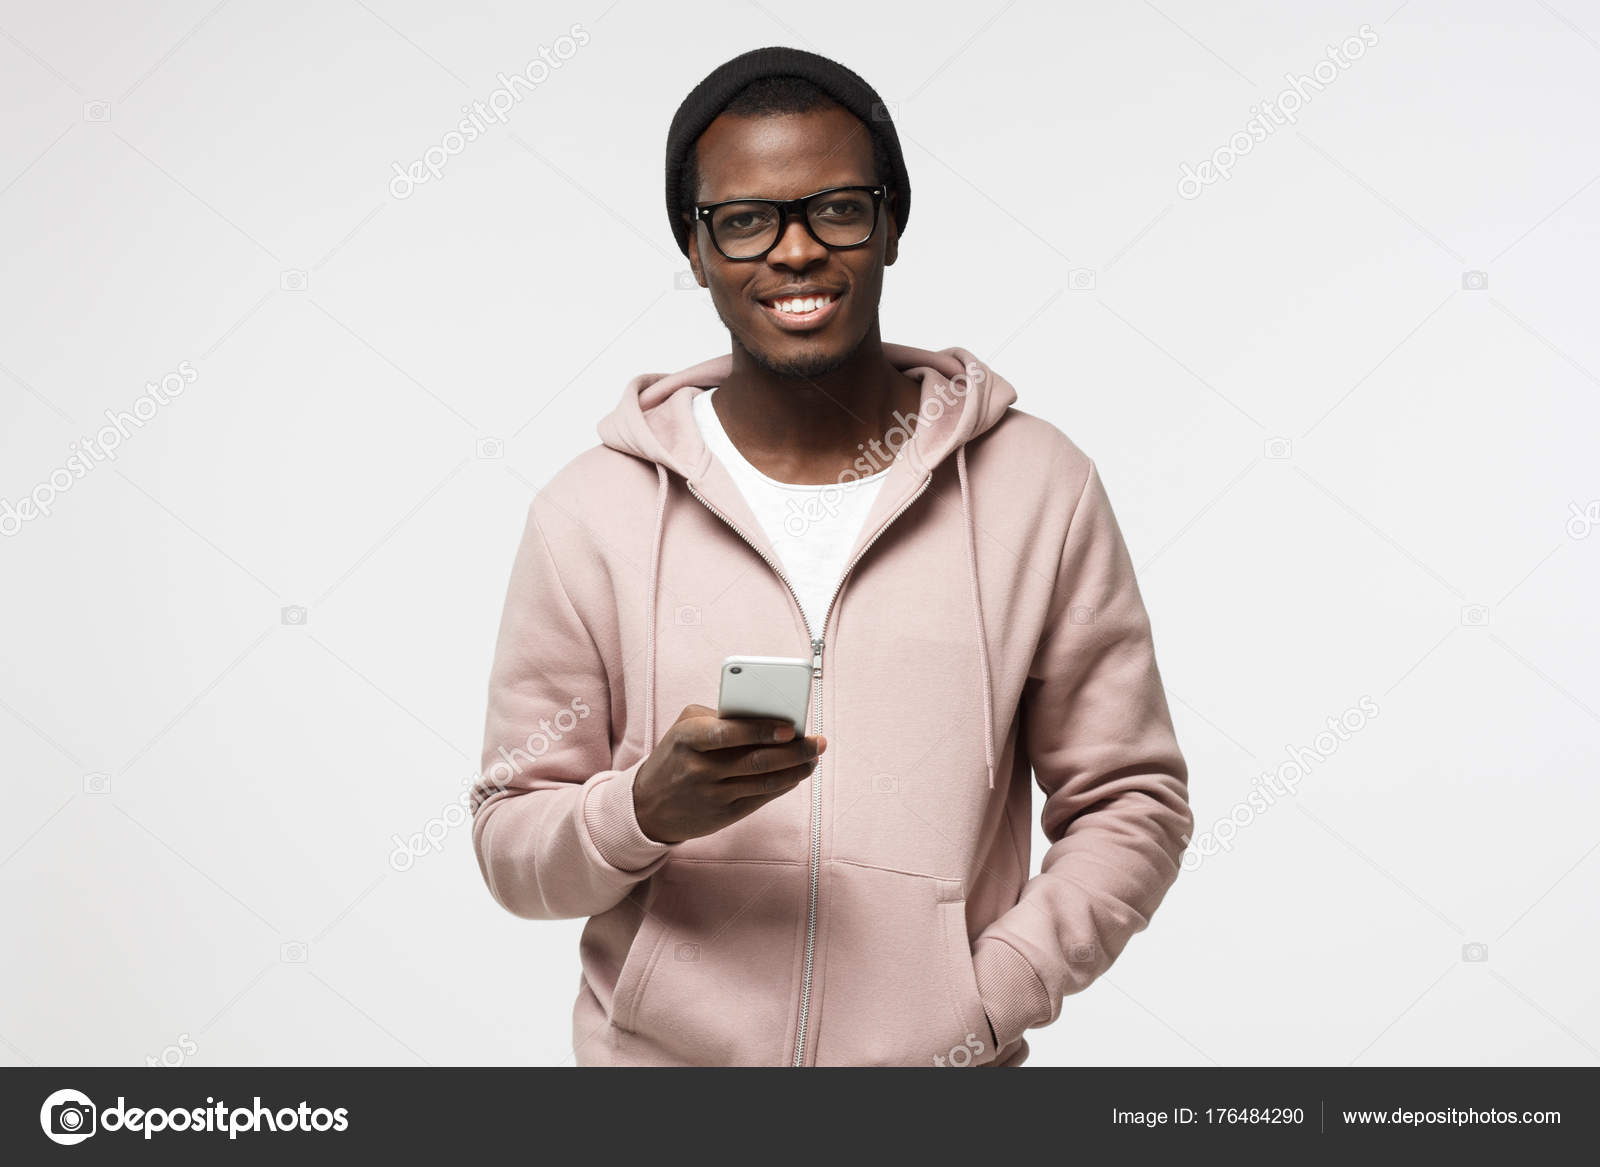 dd8d07e553d5 Closeup portrait of young African American man in casual clothes and  spectacles pictured isolated on white background ...